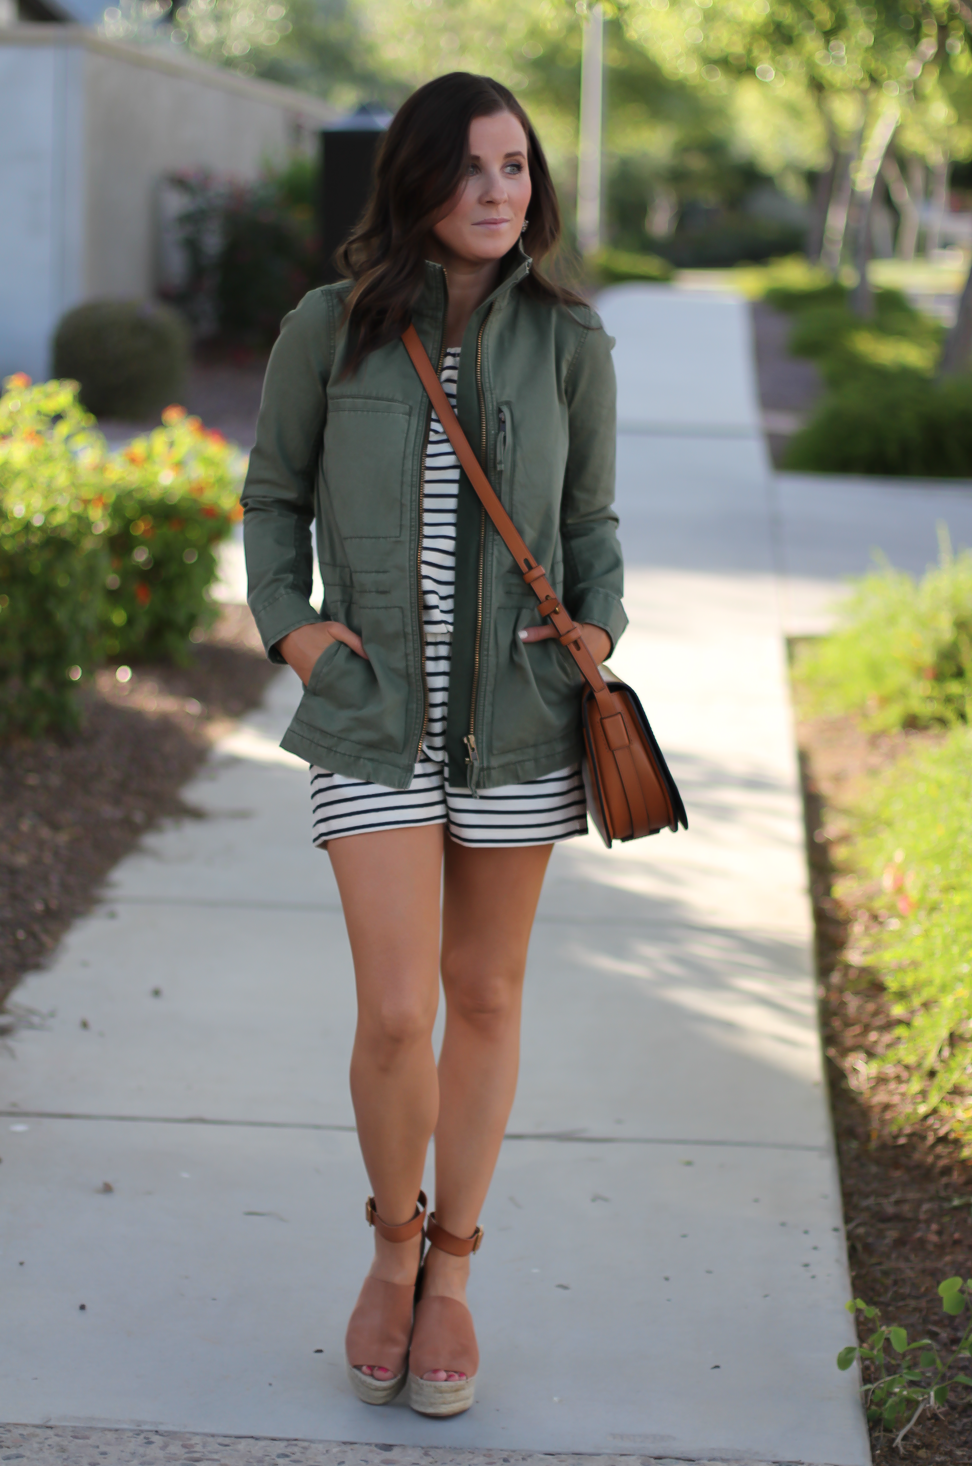 Striped Romper, Green Utility Jacket, Suede Espadrille Wedges, Cognac Saddle Wedges, Madewell, Chloe, Tory Burch 2